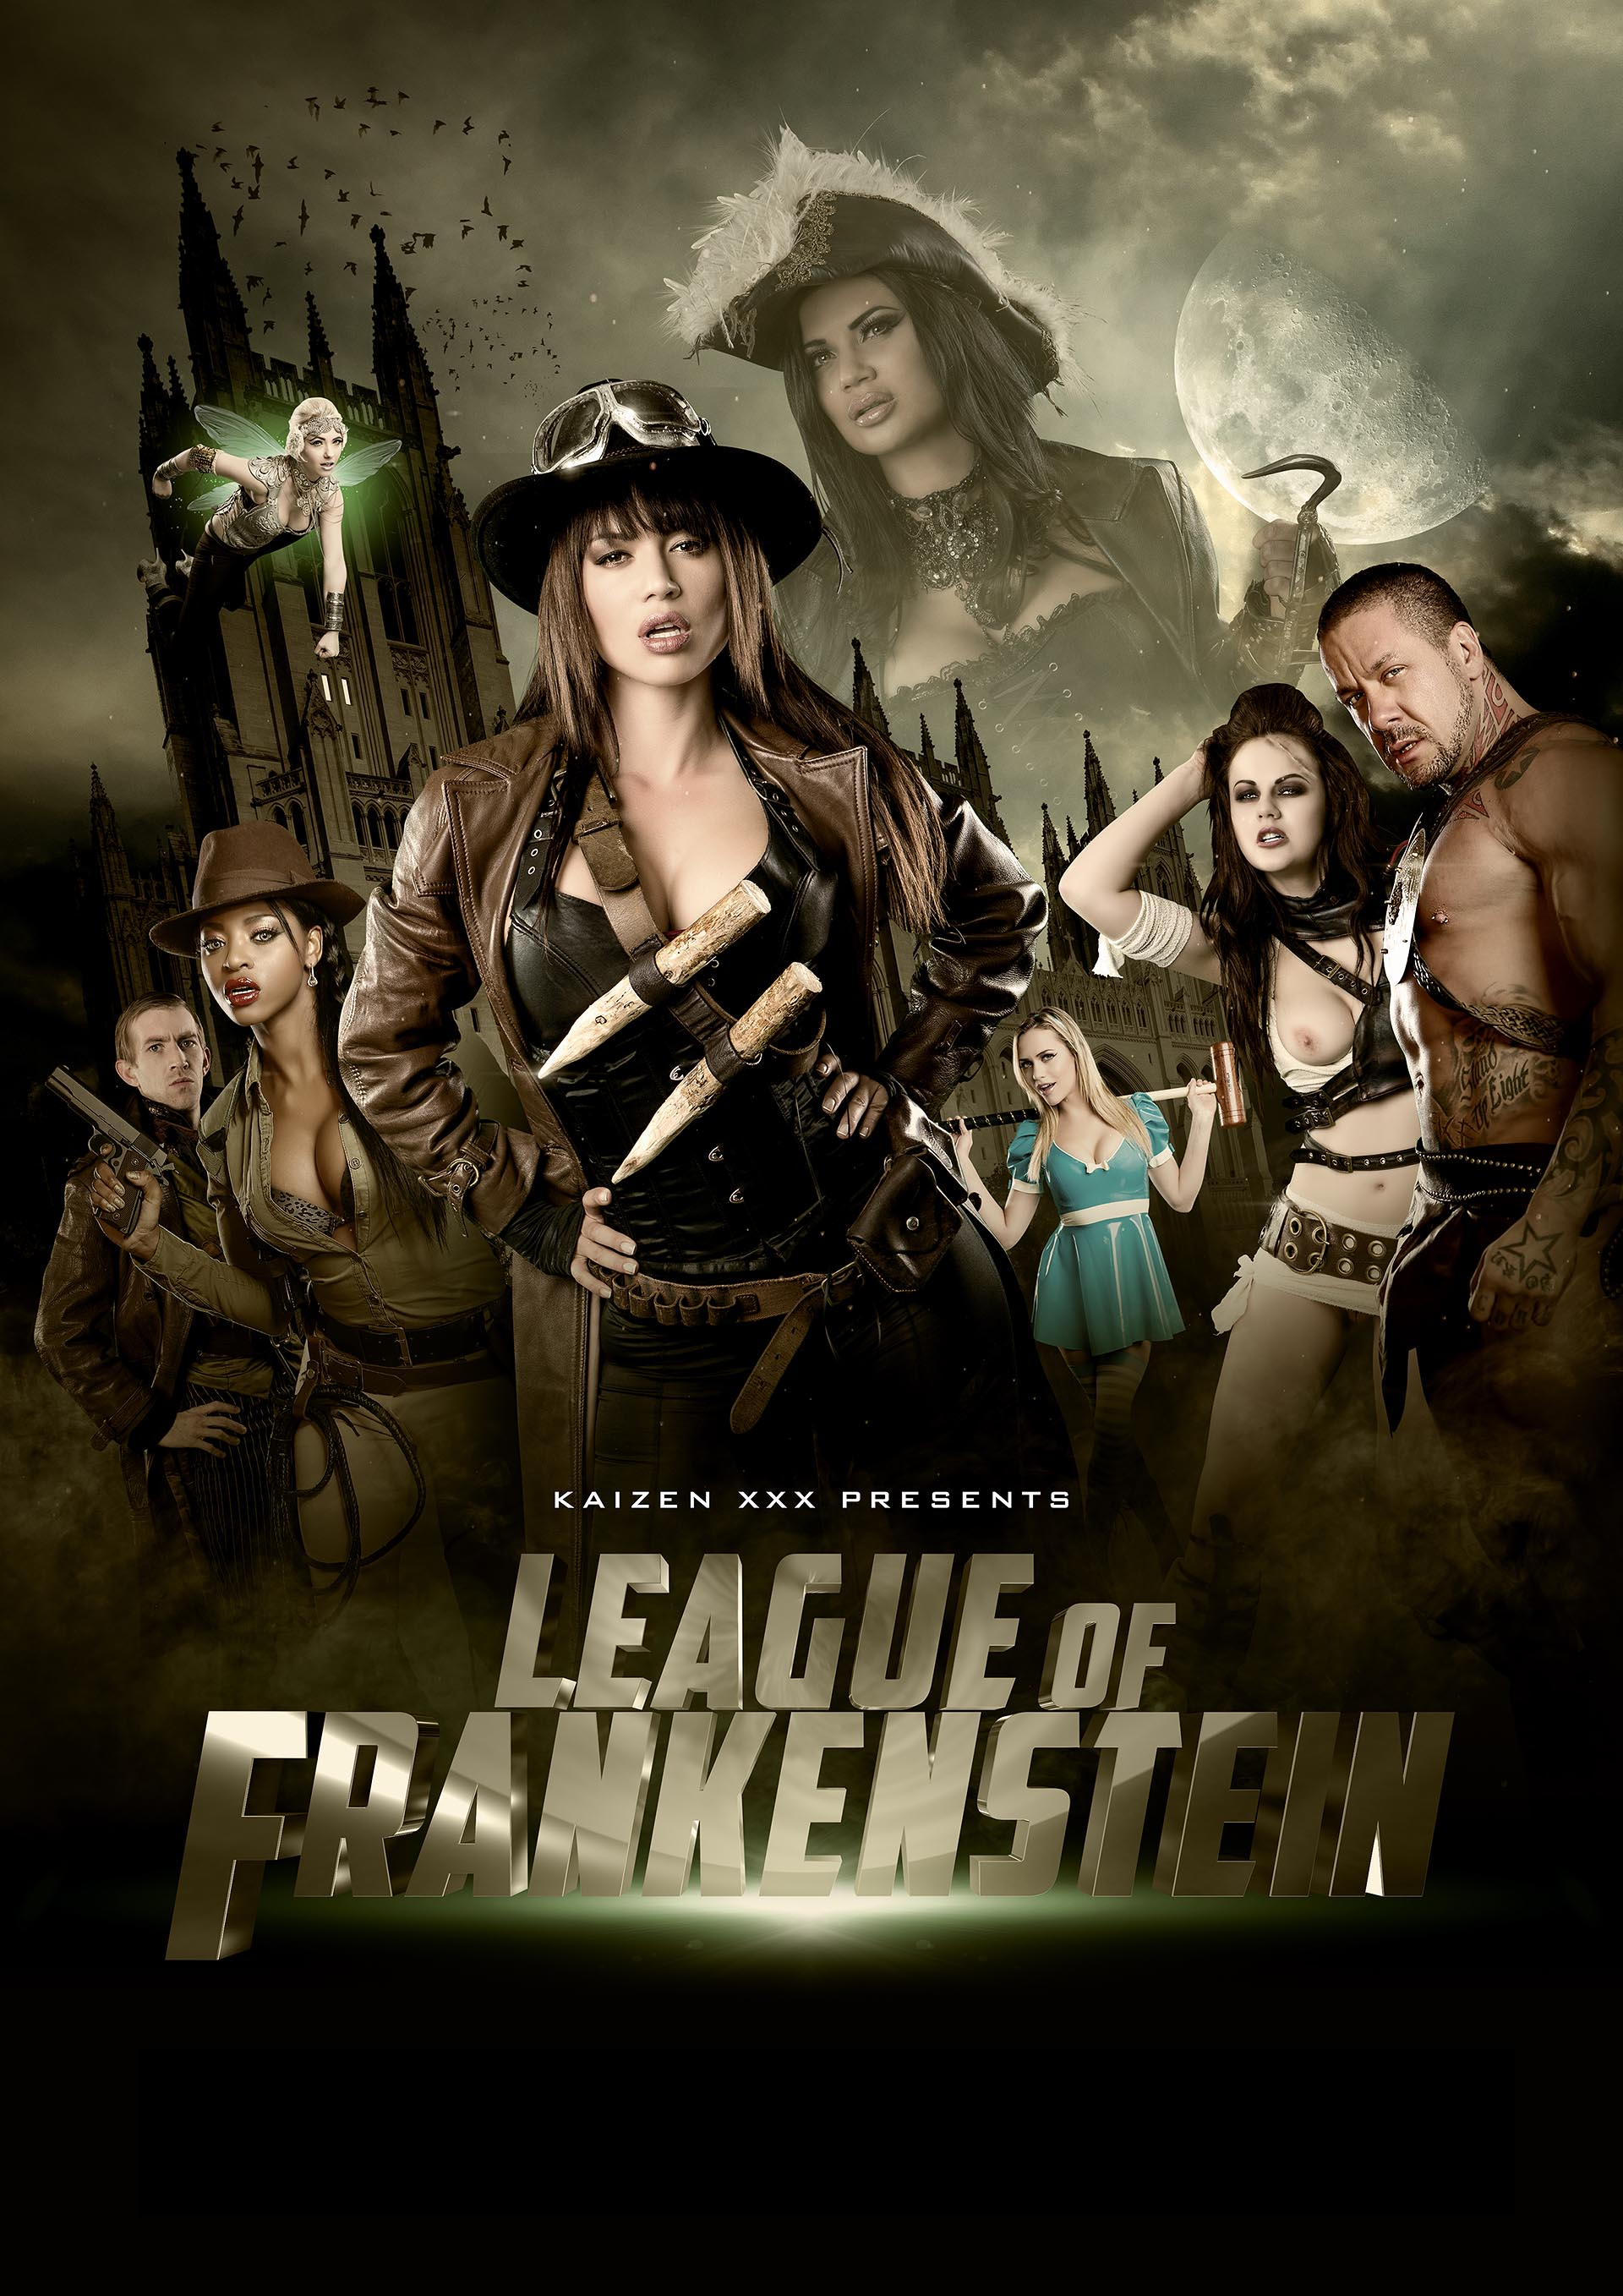 LEAGUE_OF_FRANKENSTEIN_concept_1.jpg